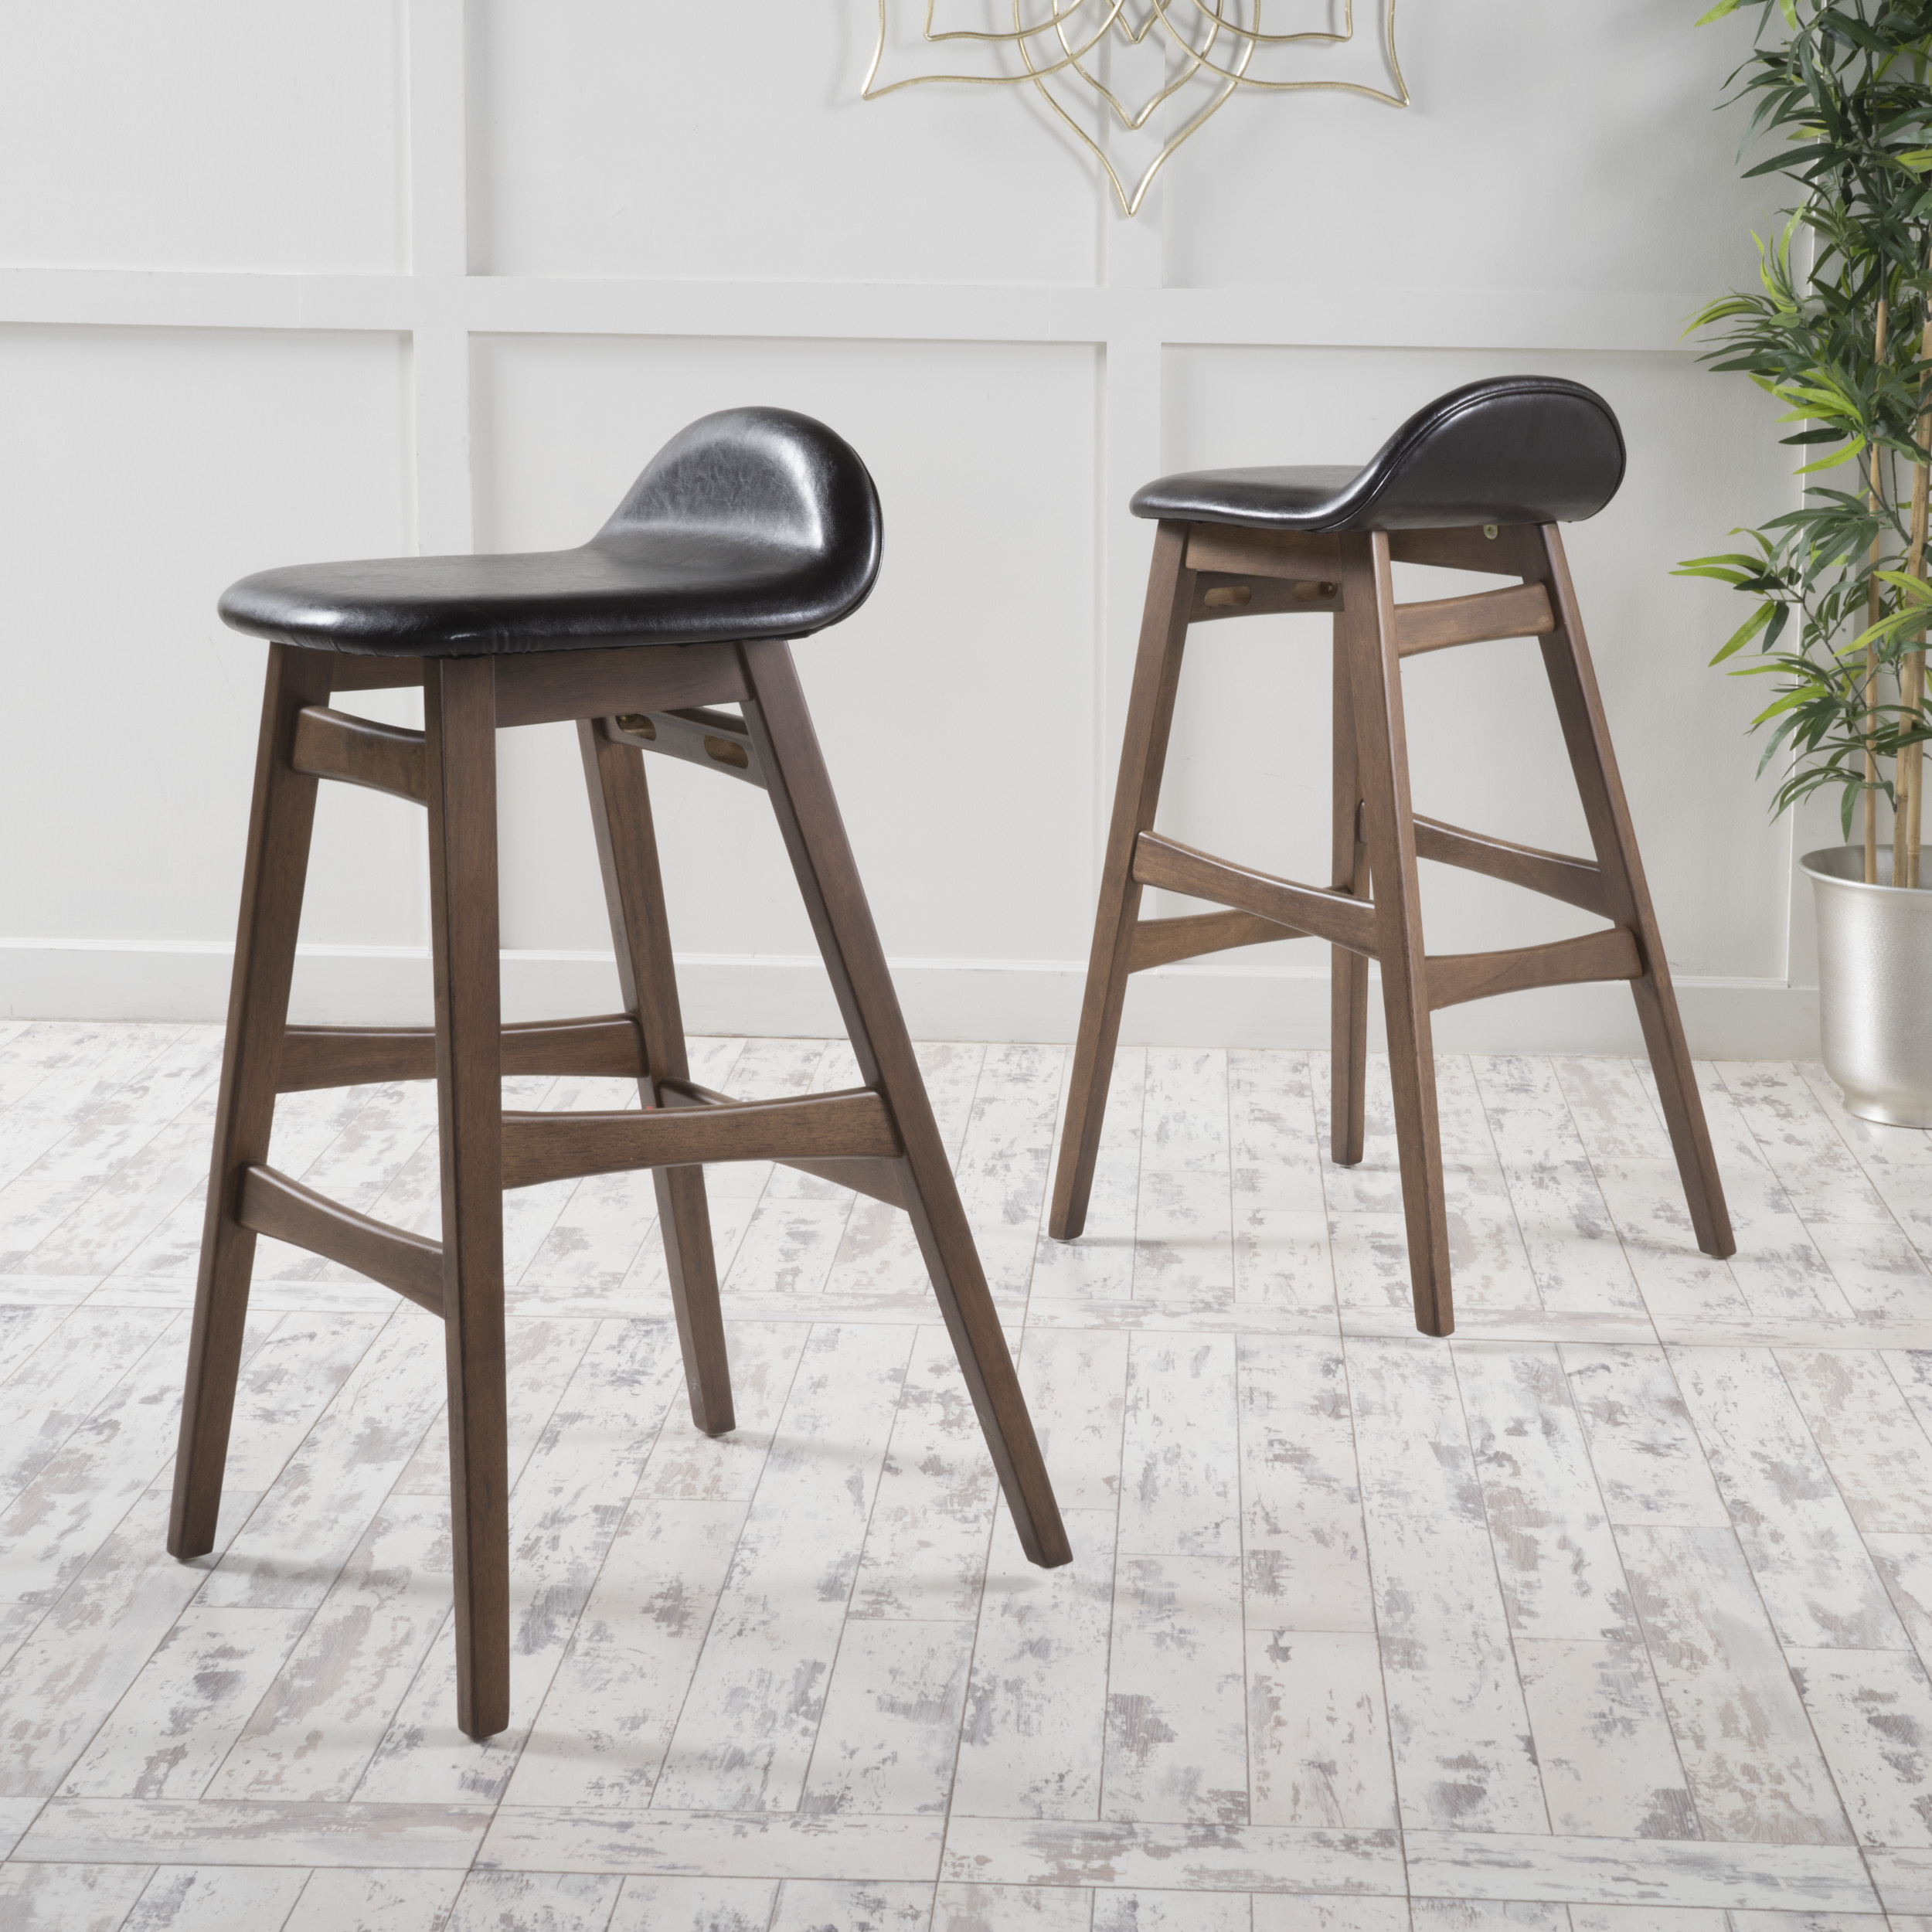 Margaret Dark Brown Leather/ Walnut Finish Bar Stool (Set of 2) платья la rouge платье